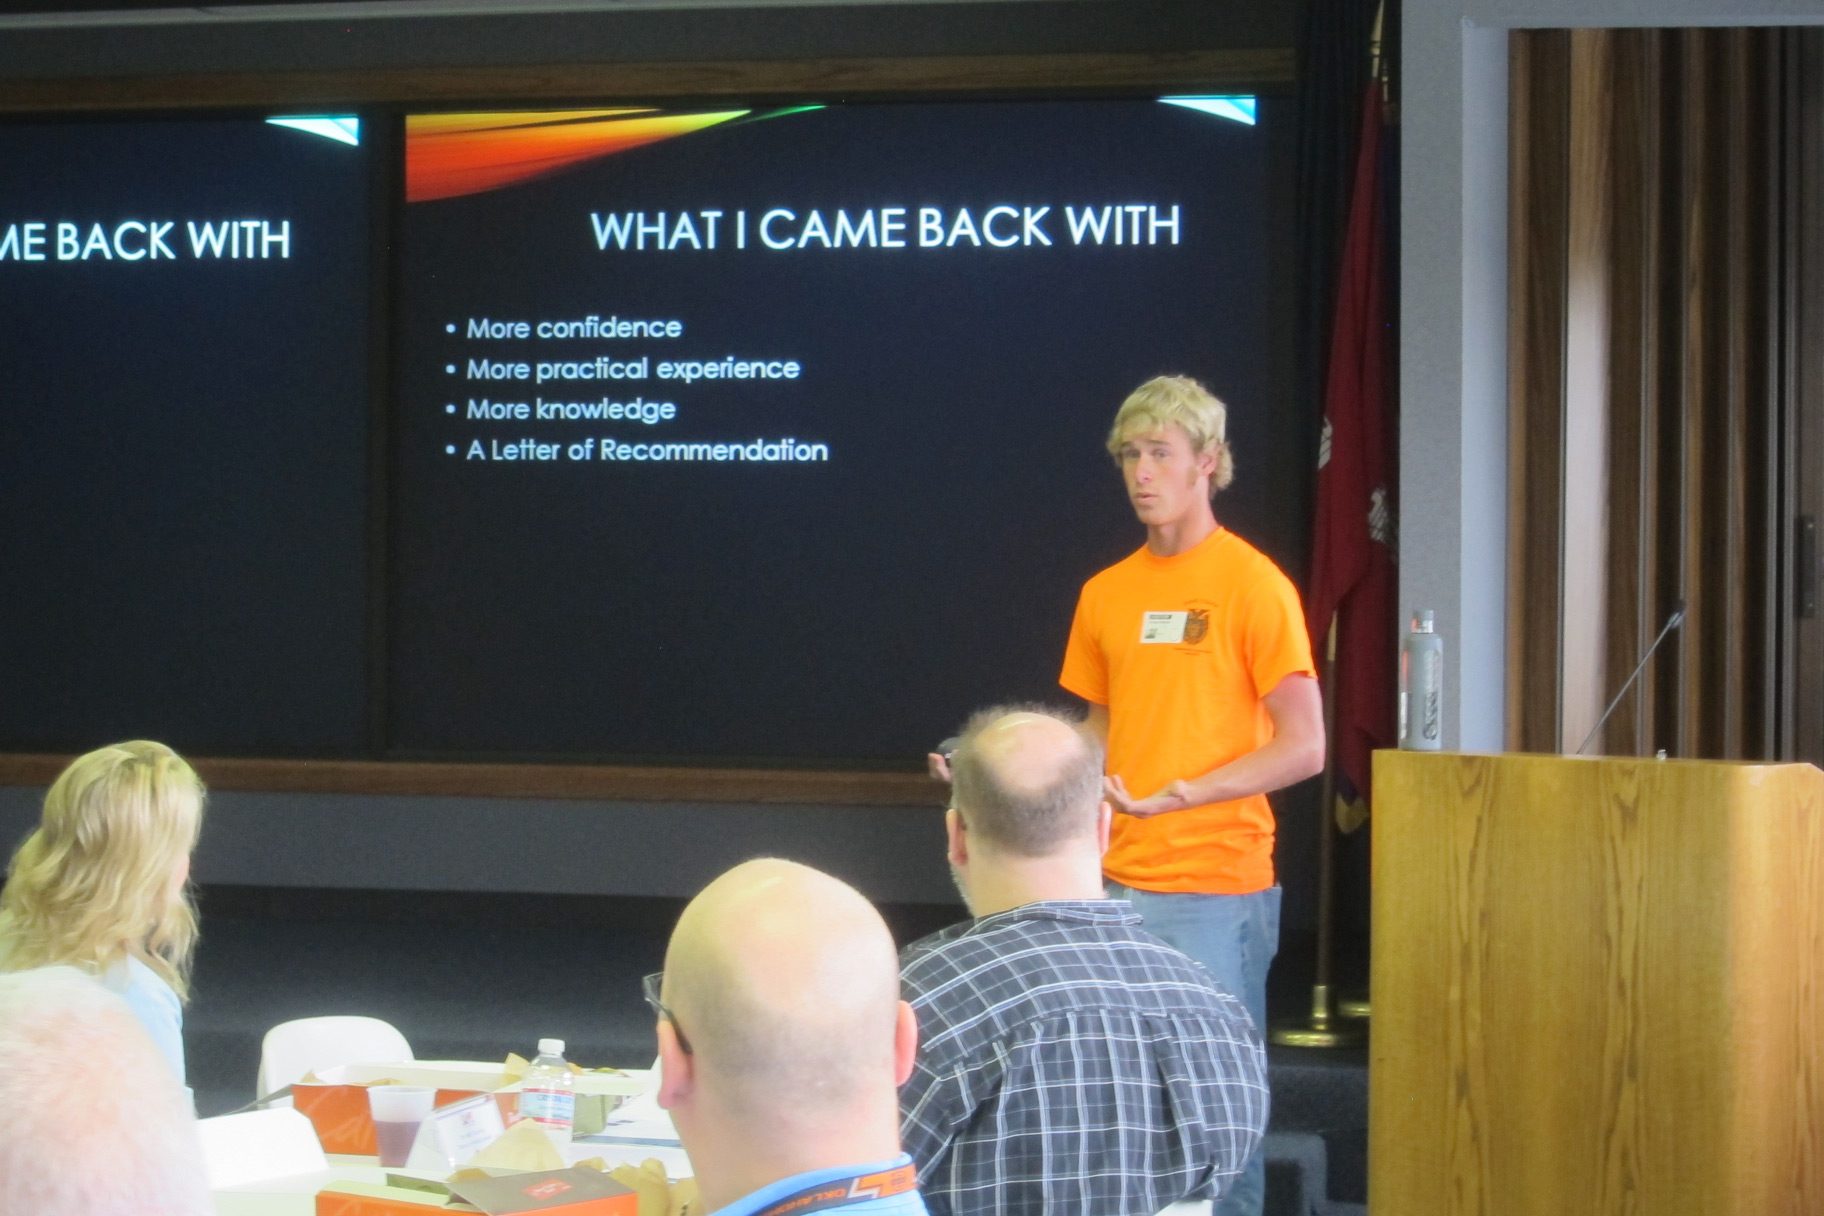 Ethan Stringer with What He Learned at Engineering and Construction Camp